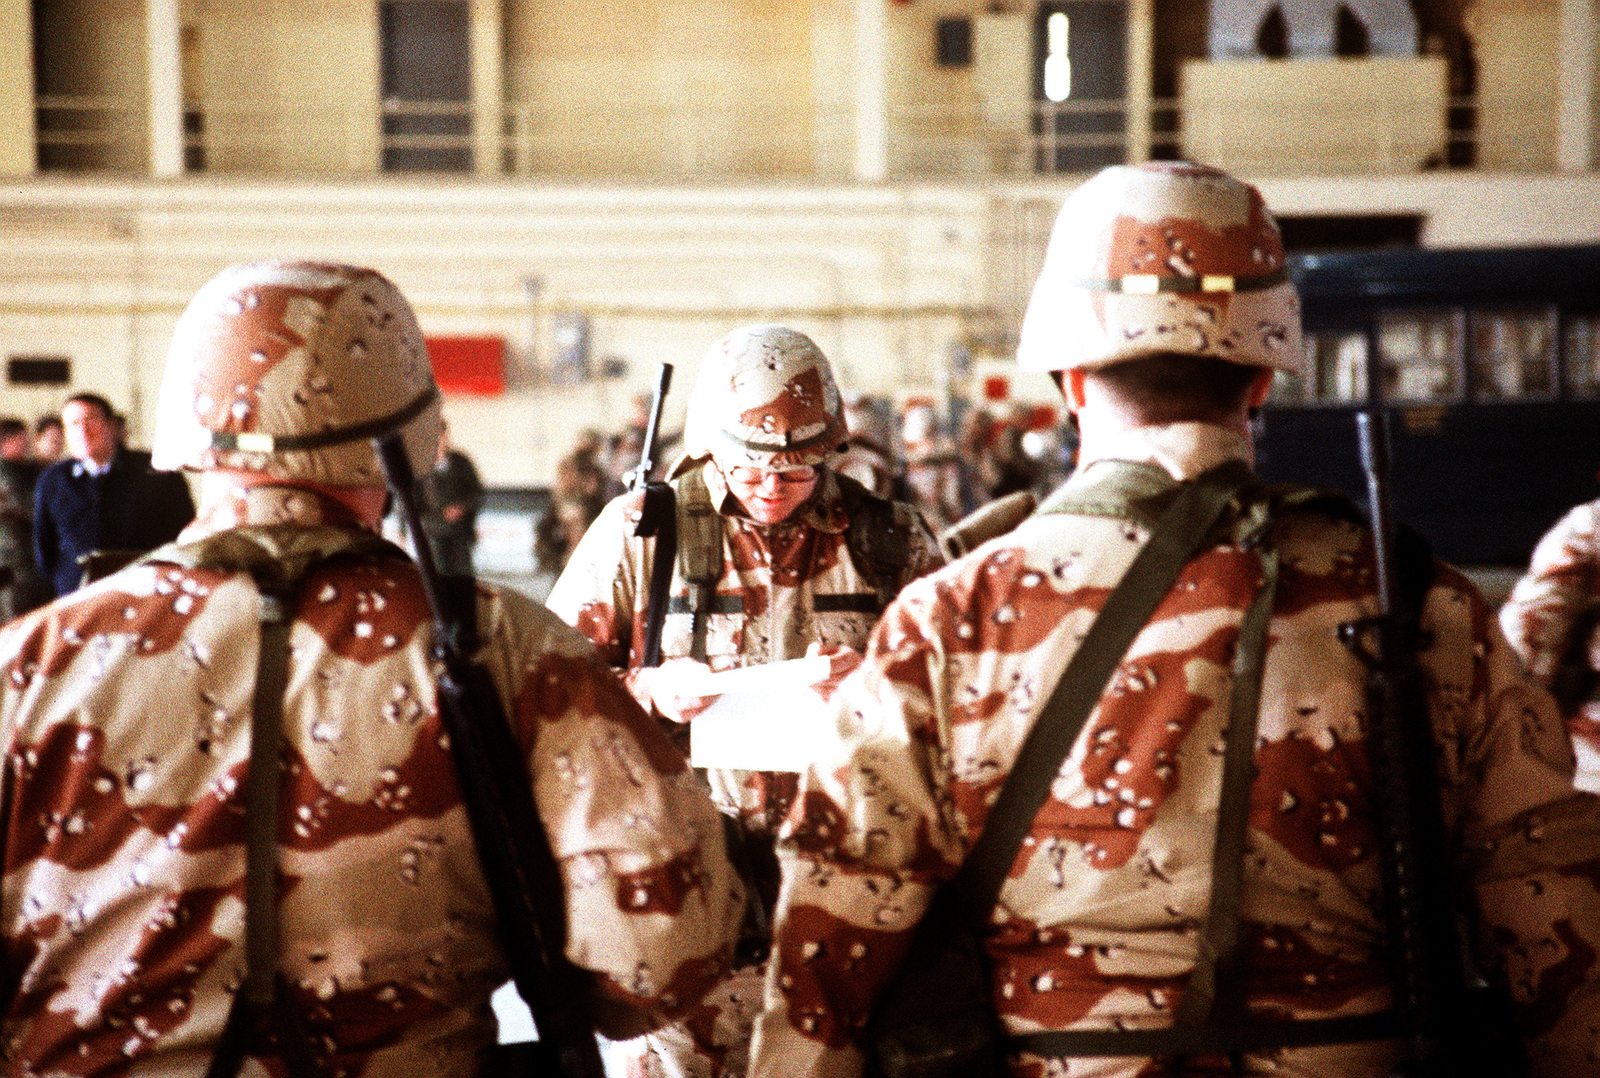 A platoon leader conducts a roll call in a hangar before his